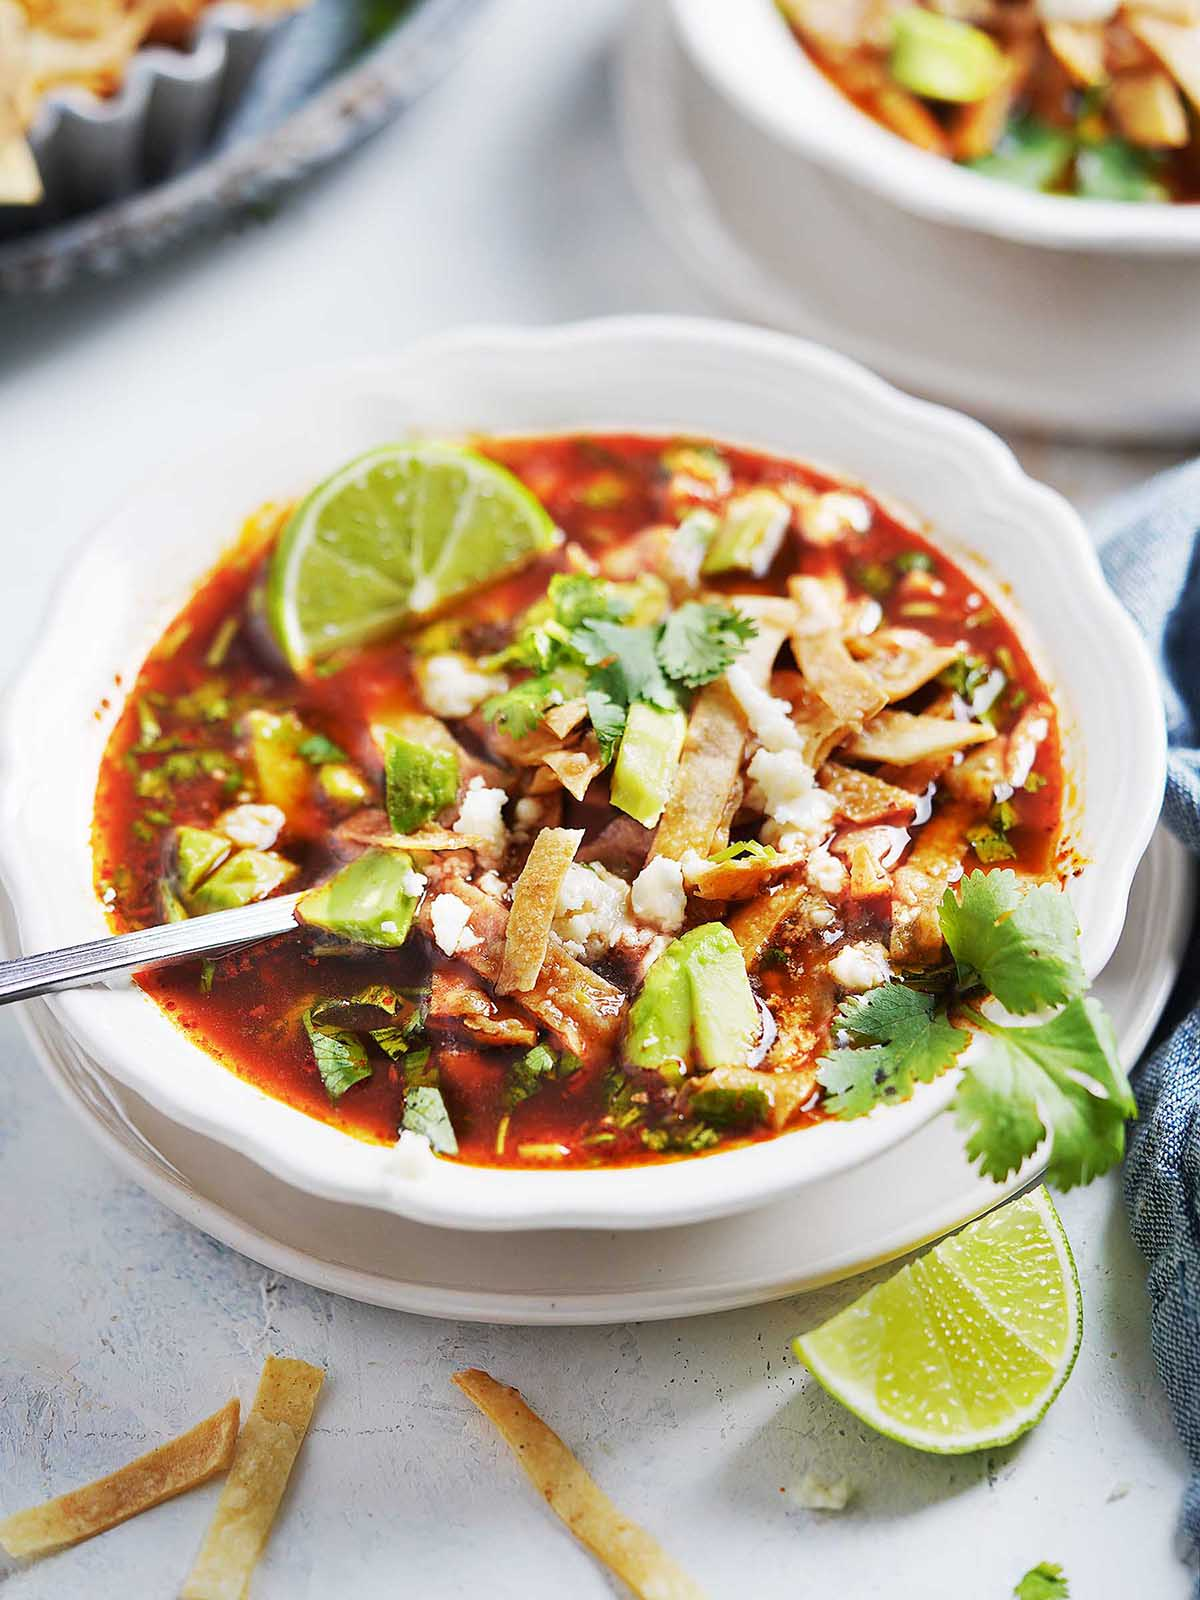 White bowl with tortilla soup garnished with avocado and cilantro.